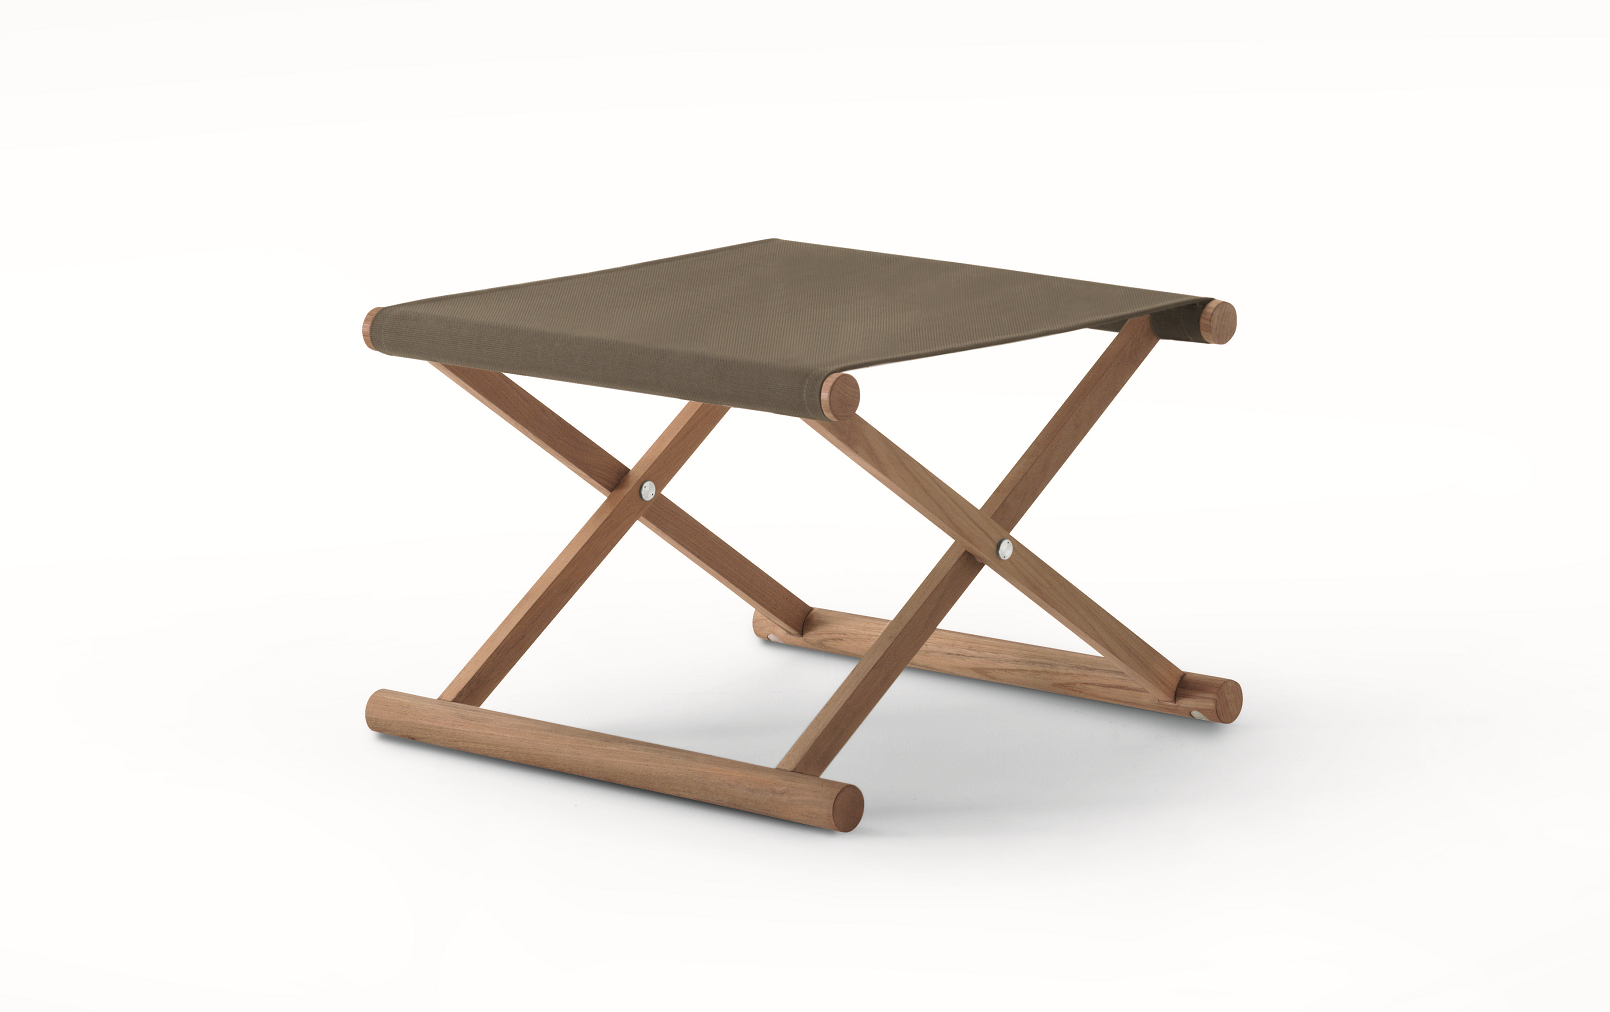 003 stool.png